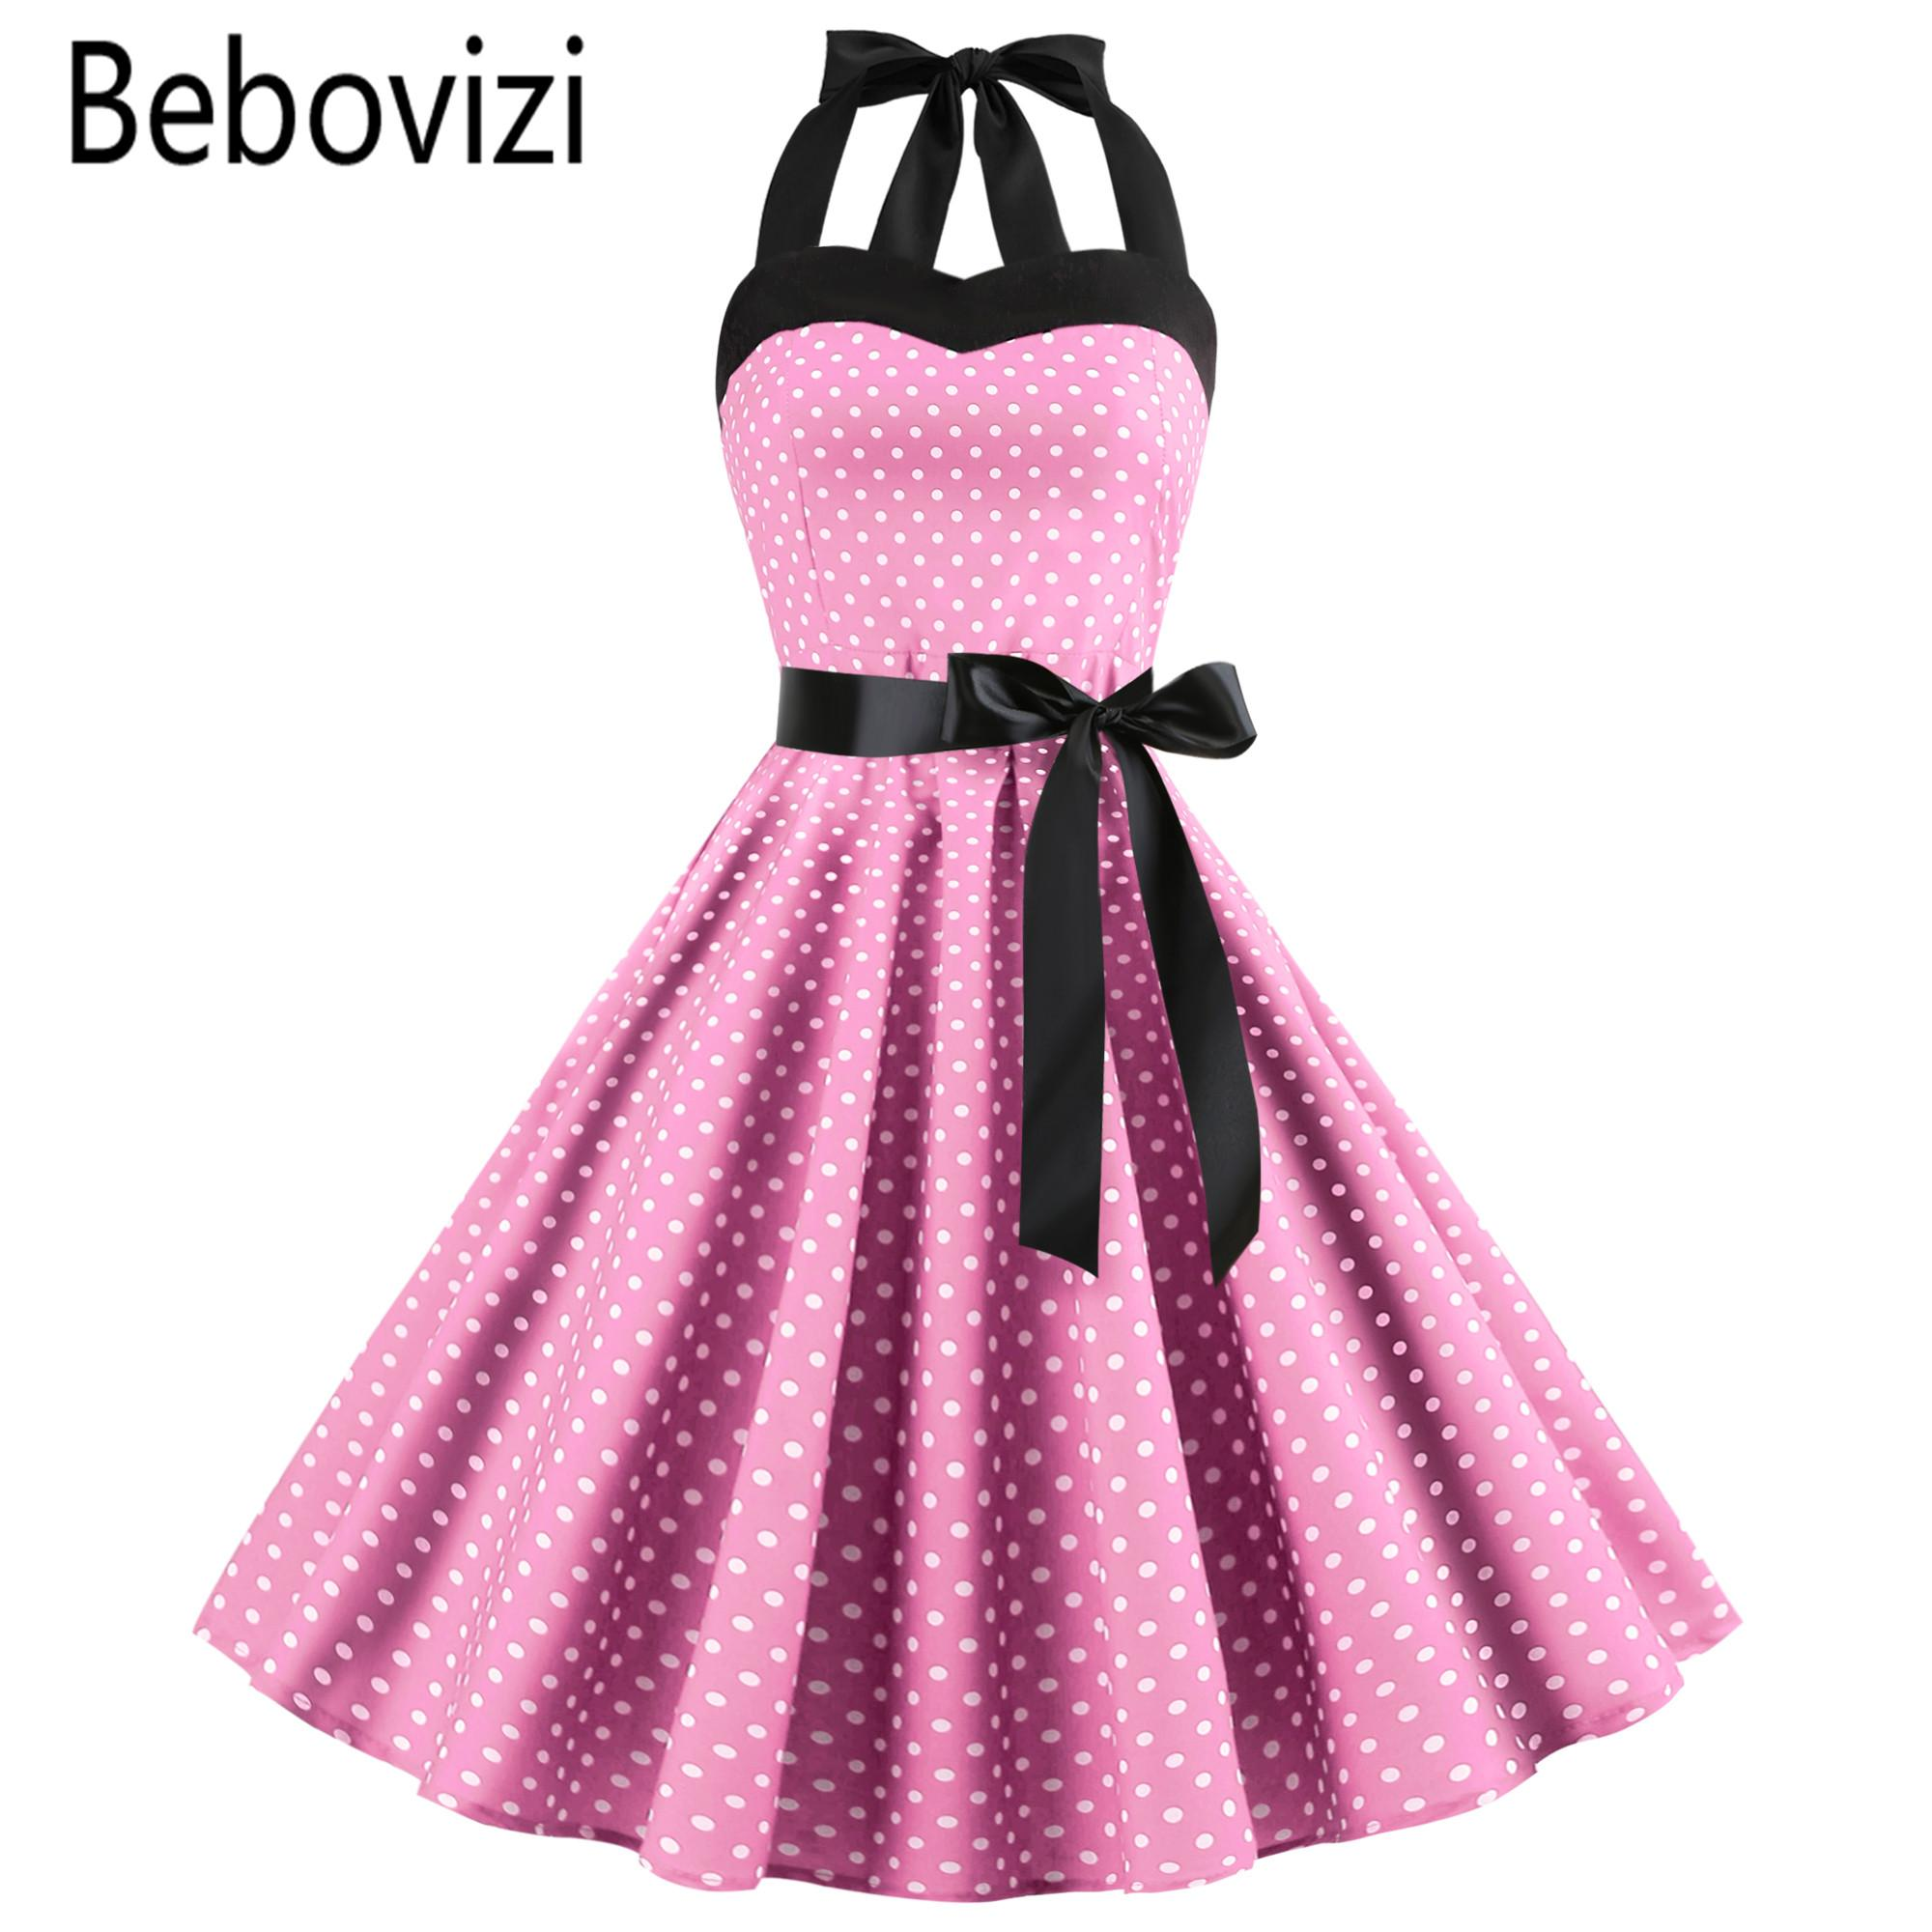 a75be071963 New 2019 Pink Midi Dress Retro Polka Dot Hepburn Vintage 50s 60s Halter  Party Dress Pin Up Rockabilly Dresses Robe Plus Size Women Floral Dress  Ladies Nice ...